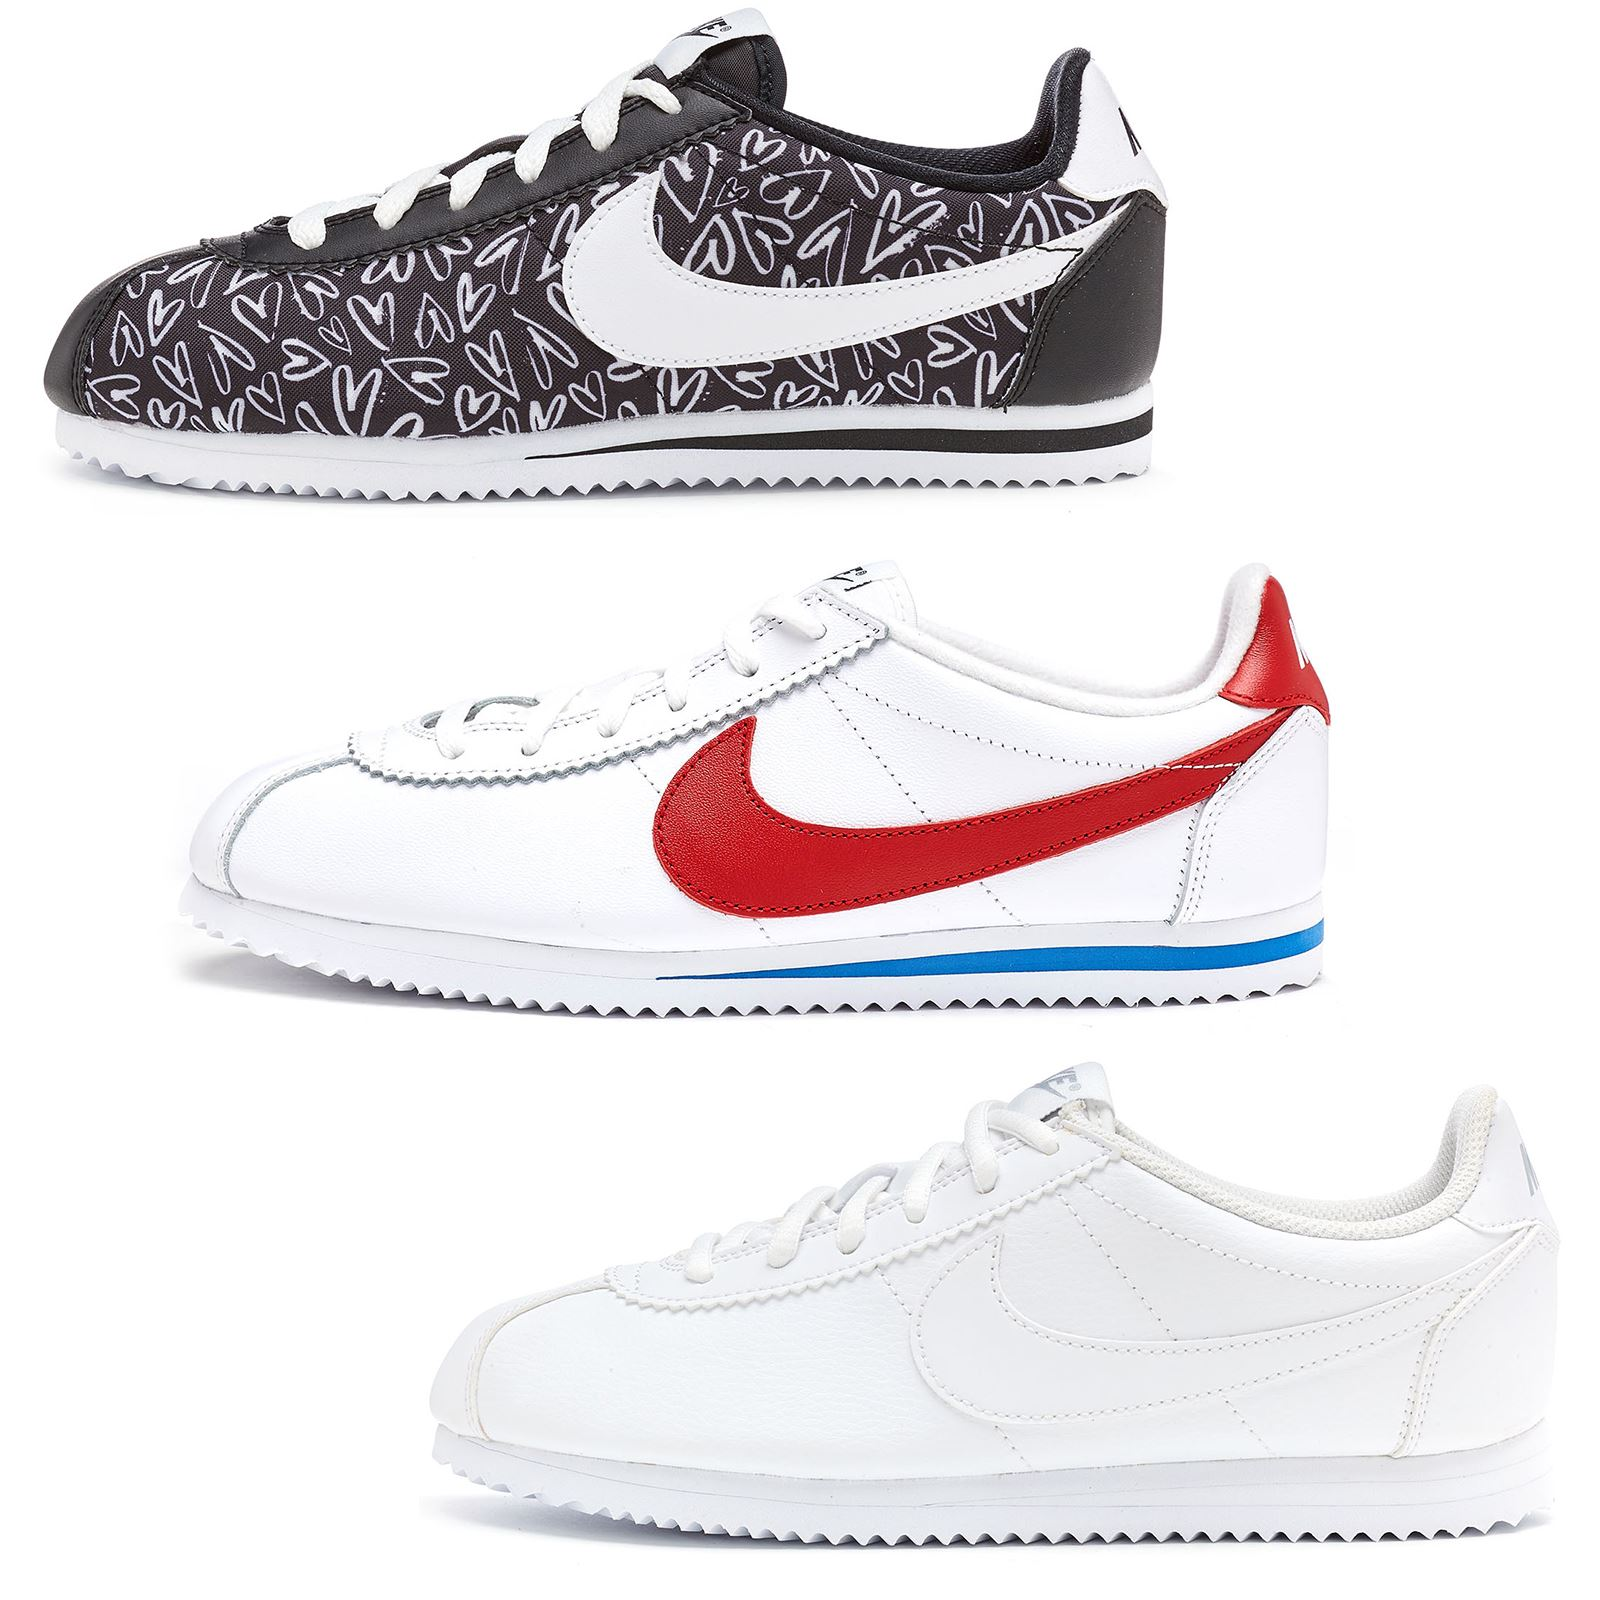 online retailer b979e 7762c ... 39 3ec8c 16ca7  italy nike cortez nylon leather forest gump print  trainers black white all sizes 480a7 02264